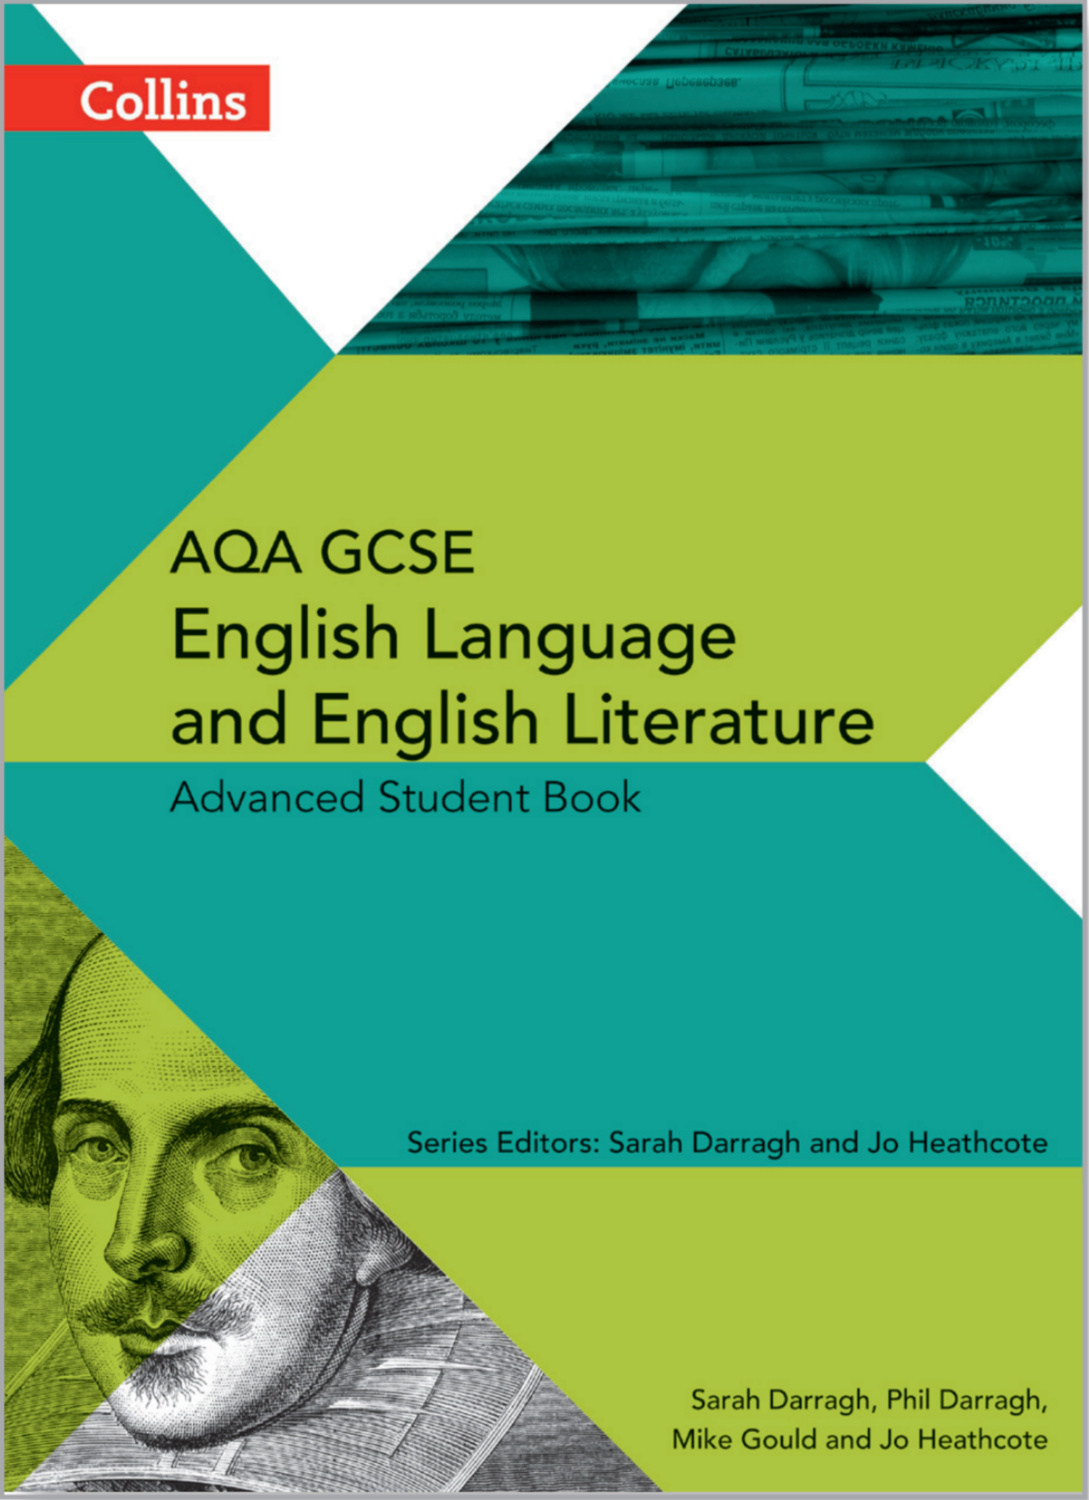 Image of the AQA English Literature and English Language Advanced Student book